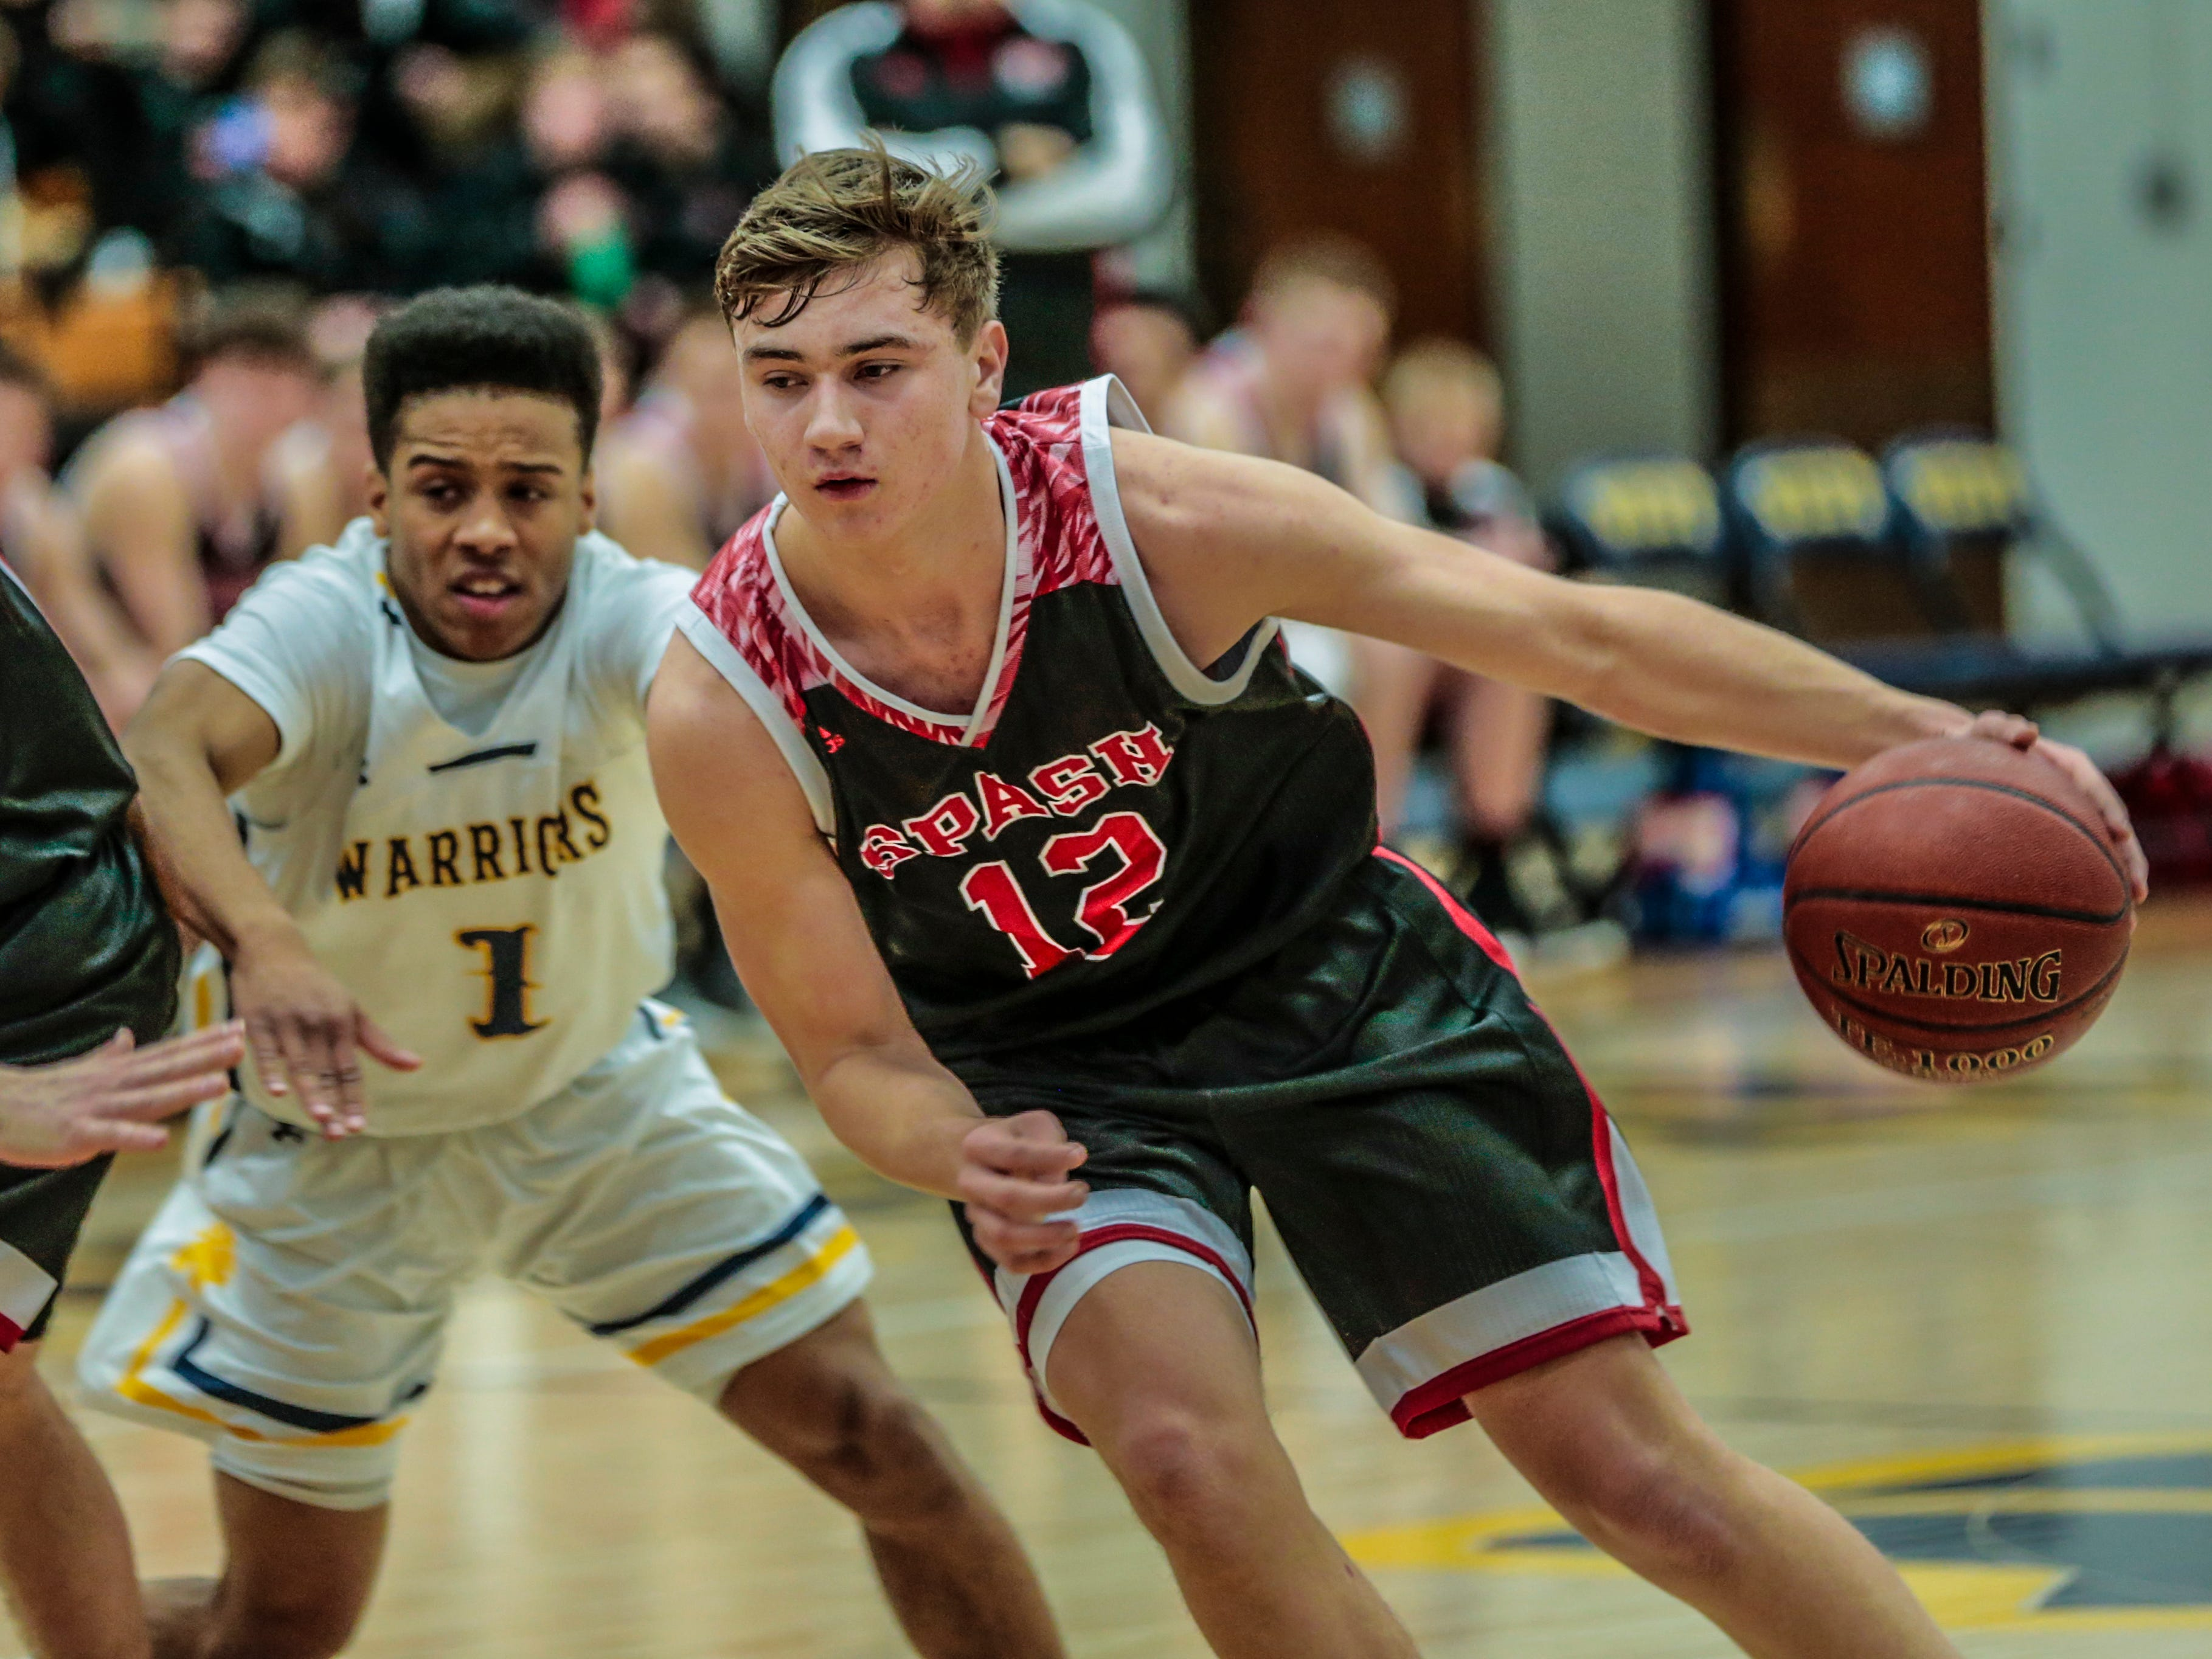 SPASH's Evan Vollendorf(12), right, makes his way pass West's Antonio Williams(1) during Wisconsin Valley Conference boys basketball game Friday, Feb. 15, 2019, at Wausau West High School in Wausau, Wis. T'xer Zhon Kha/USA TODAY NETWORK-Wisconsin